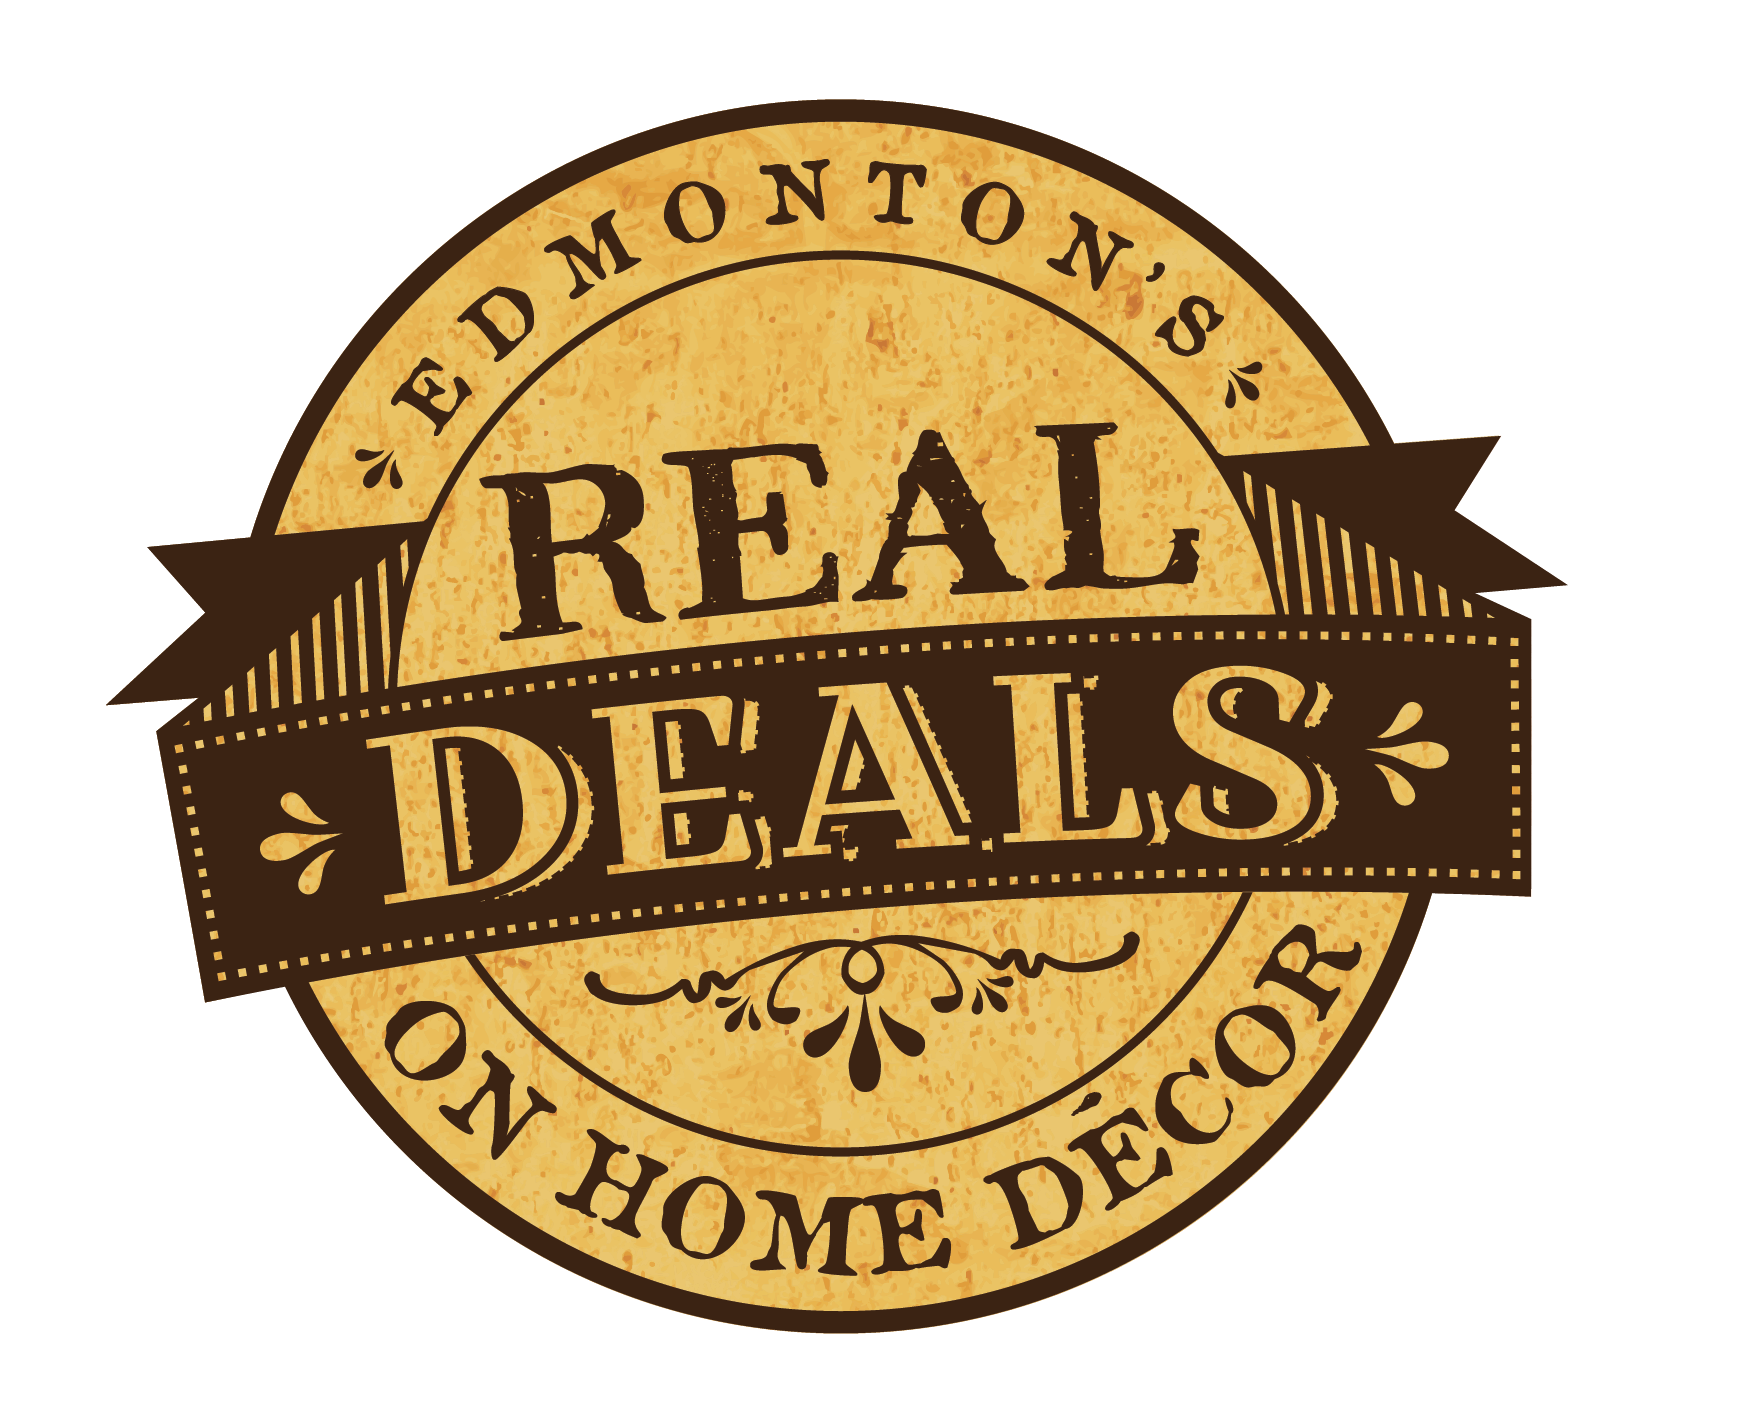 real deals on home decor edmonton ab - Home Decor Edmonton